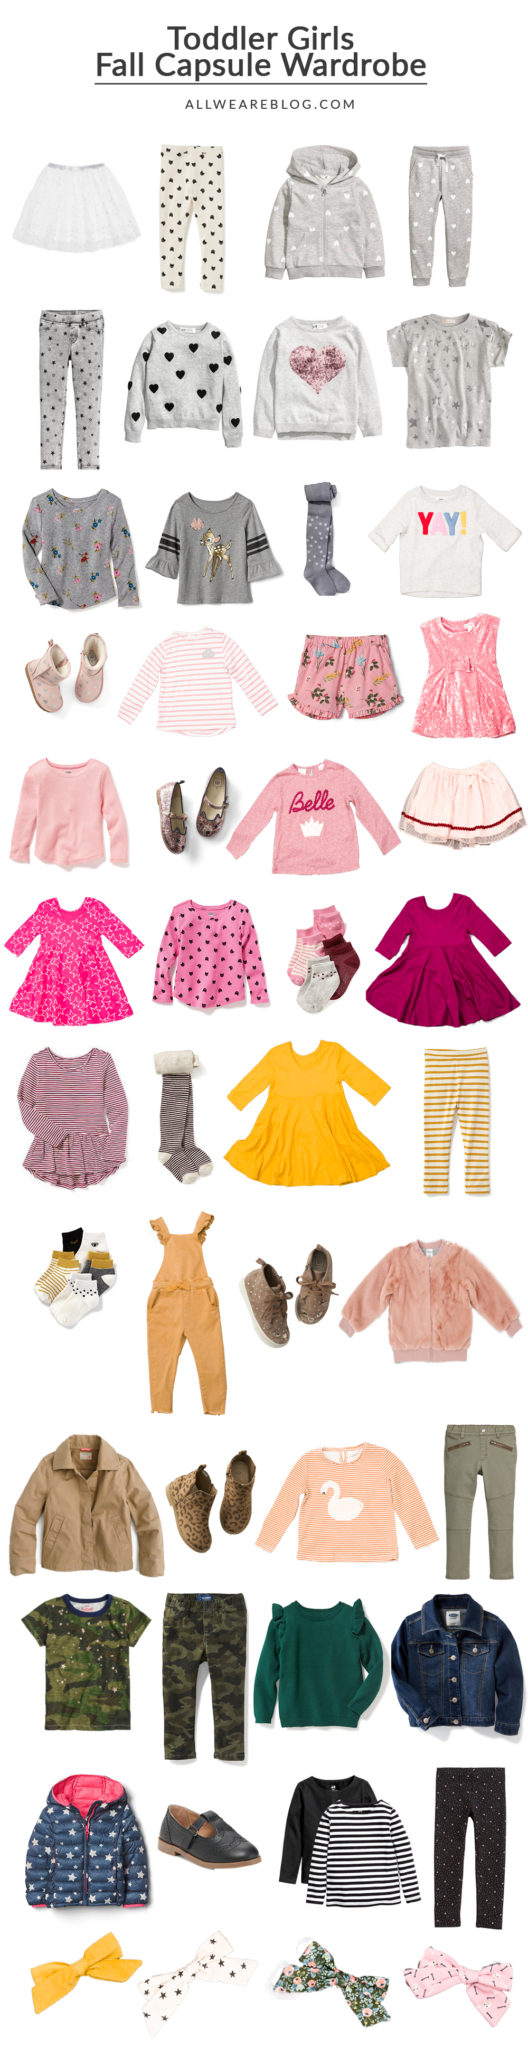 how to build a colorful capsule wardrobe for your toddler on allweareblog.com